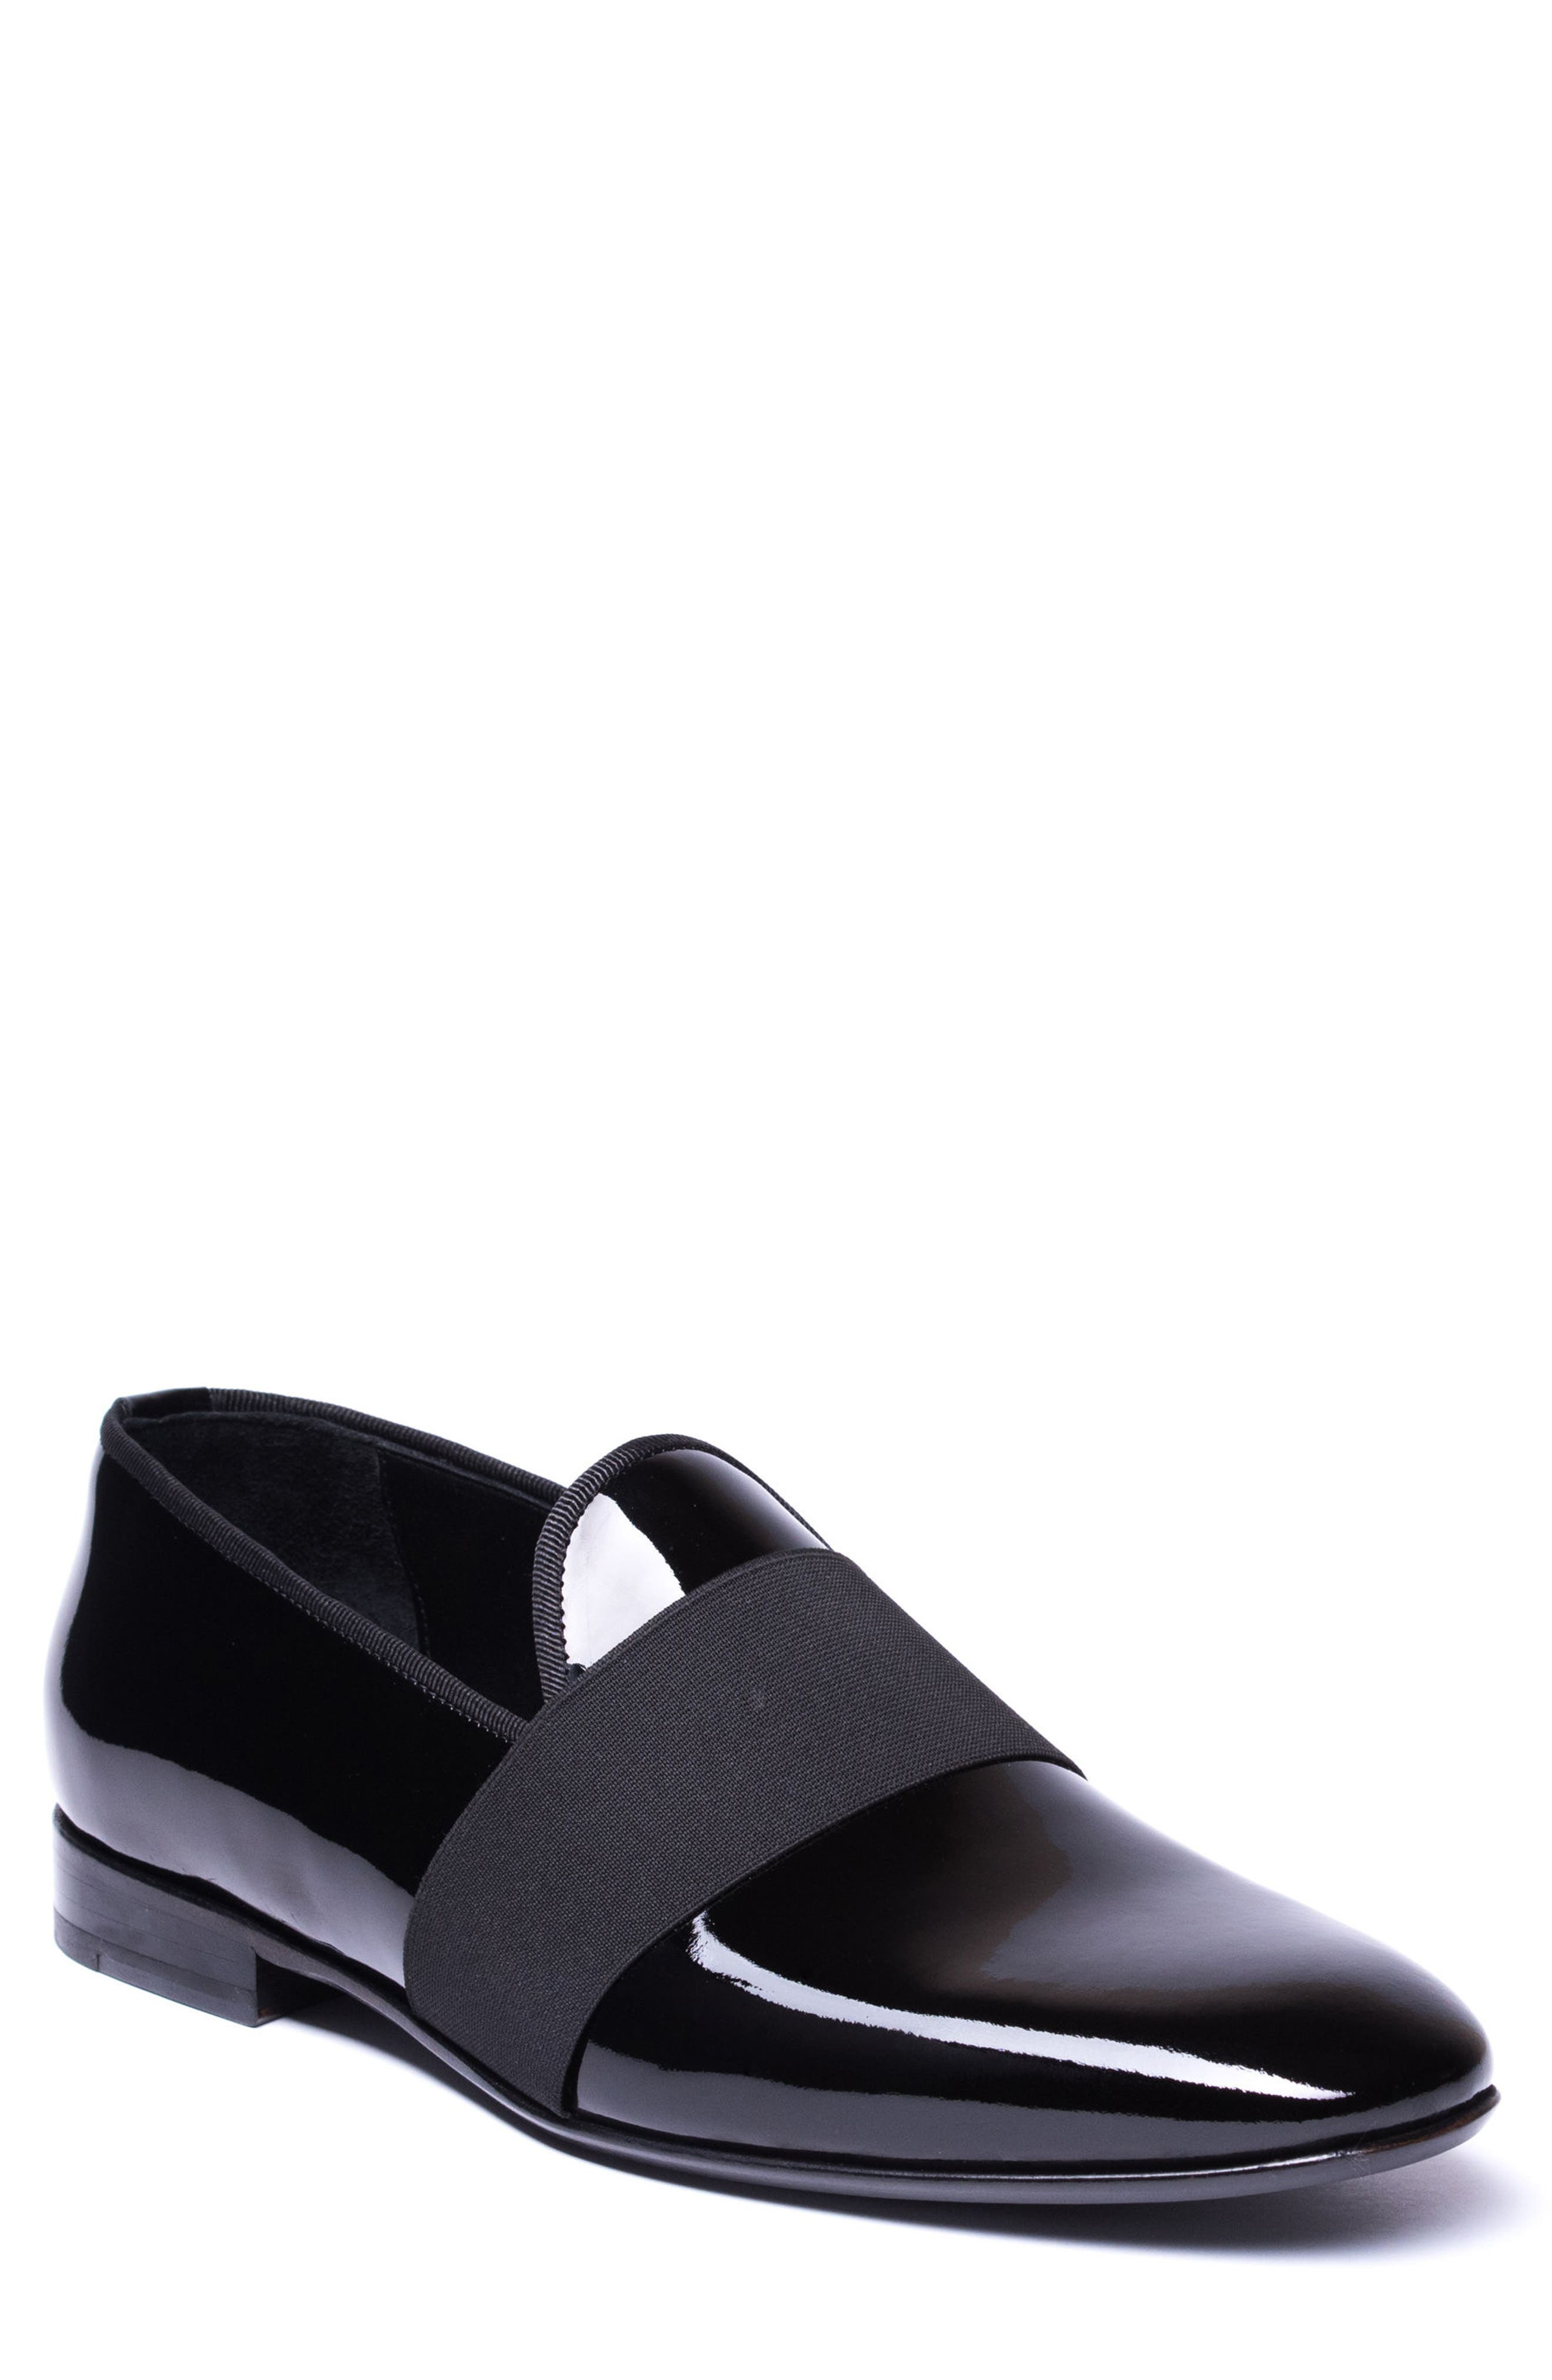 Alessandro Banded Venetian Loafer,                             Main thumbnail 1, color,                             BLACK LEATHER